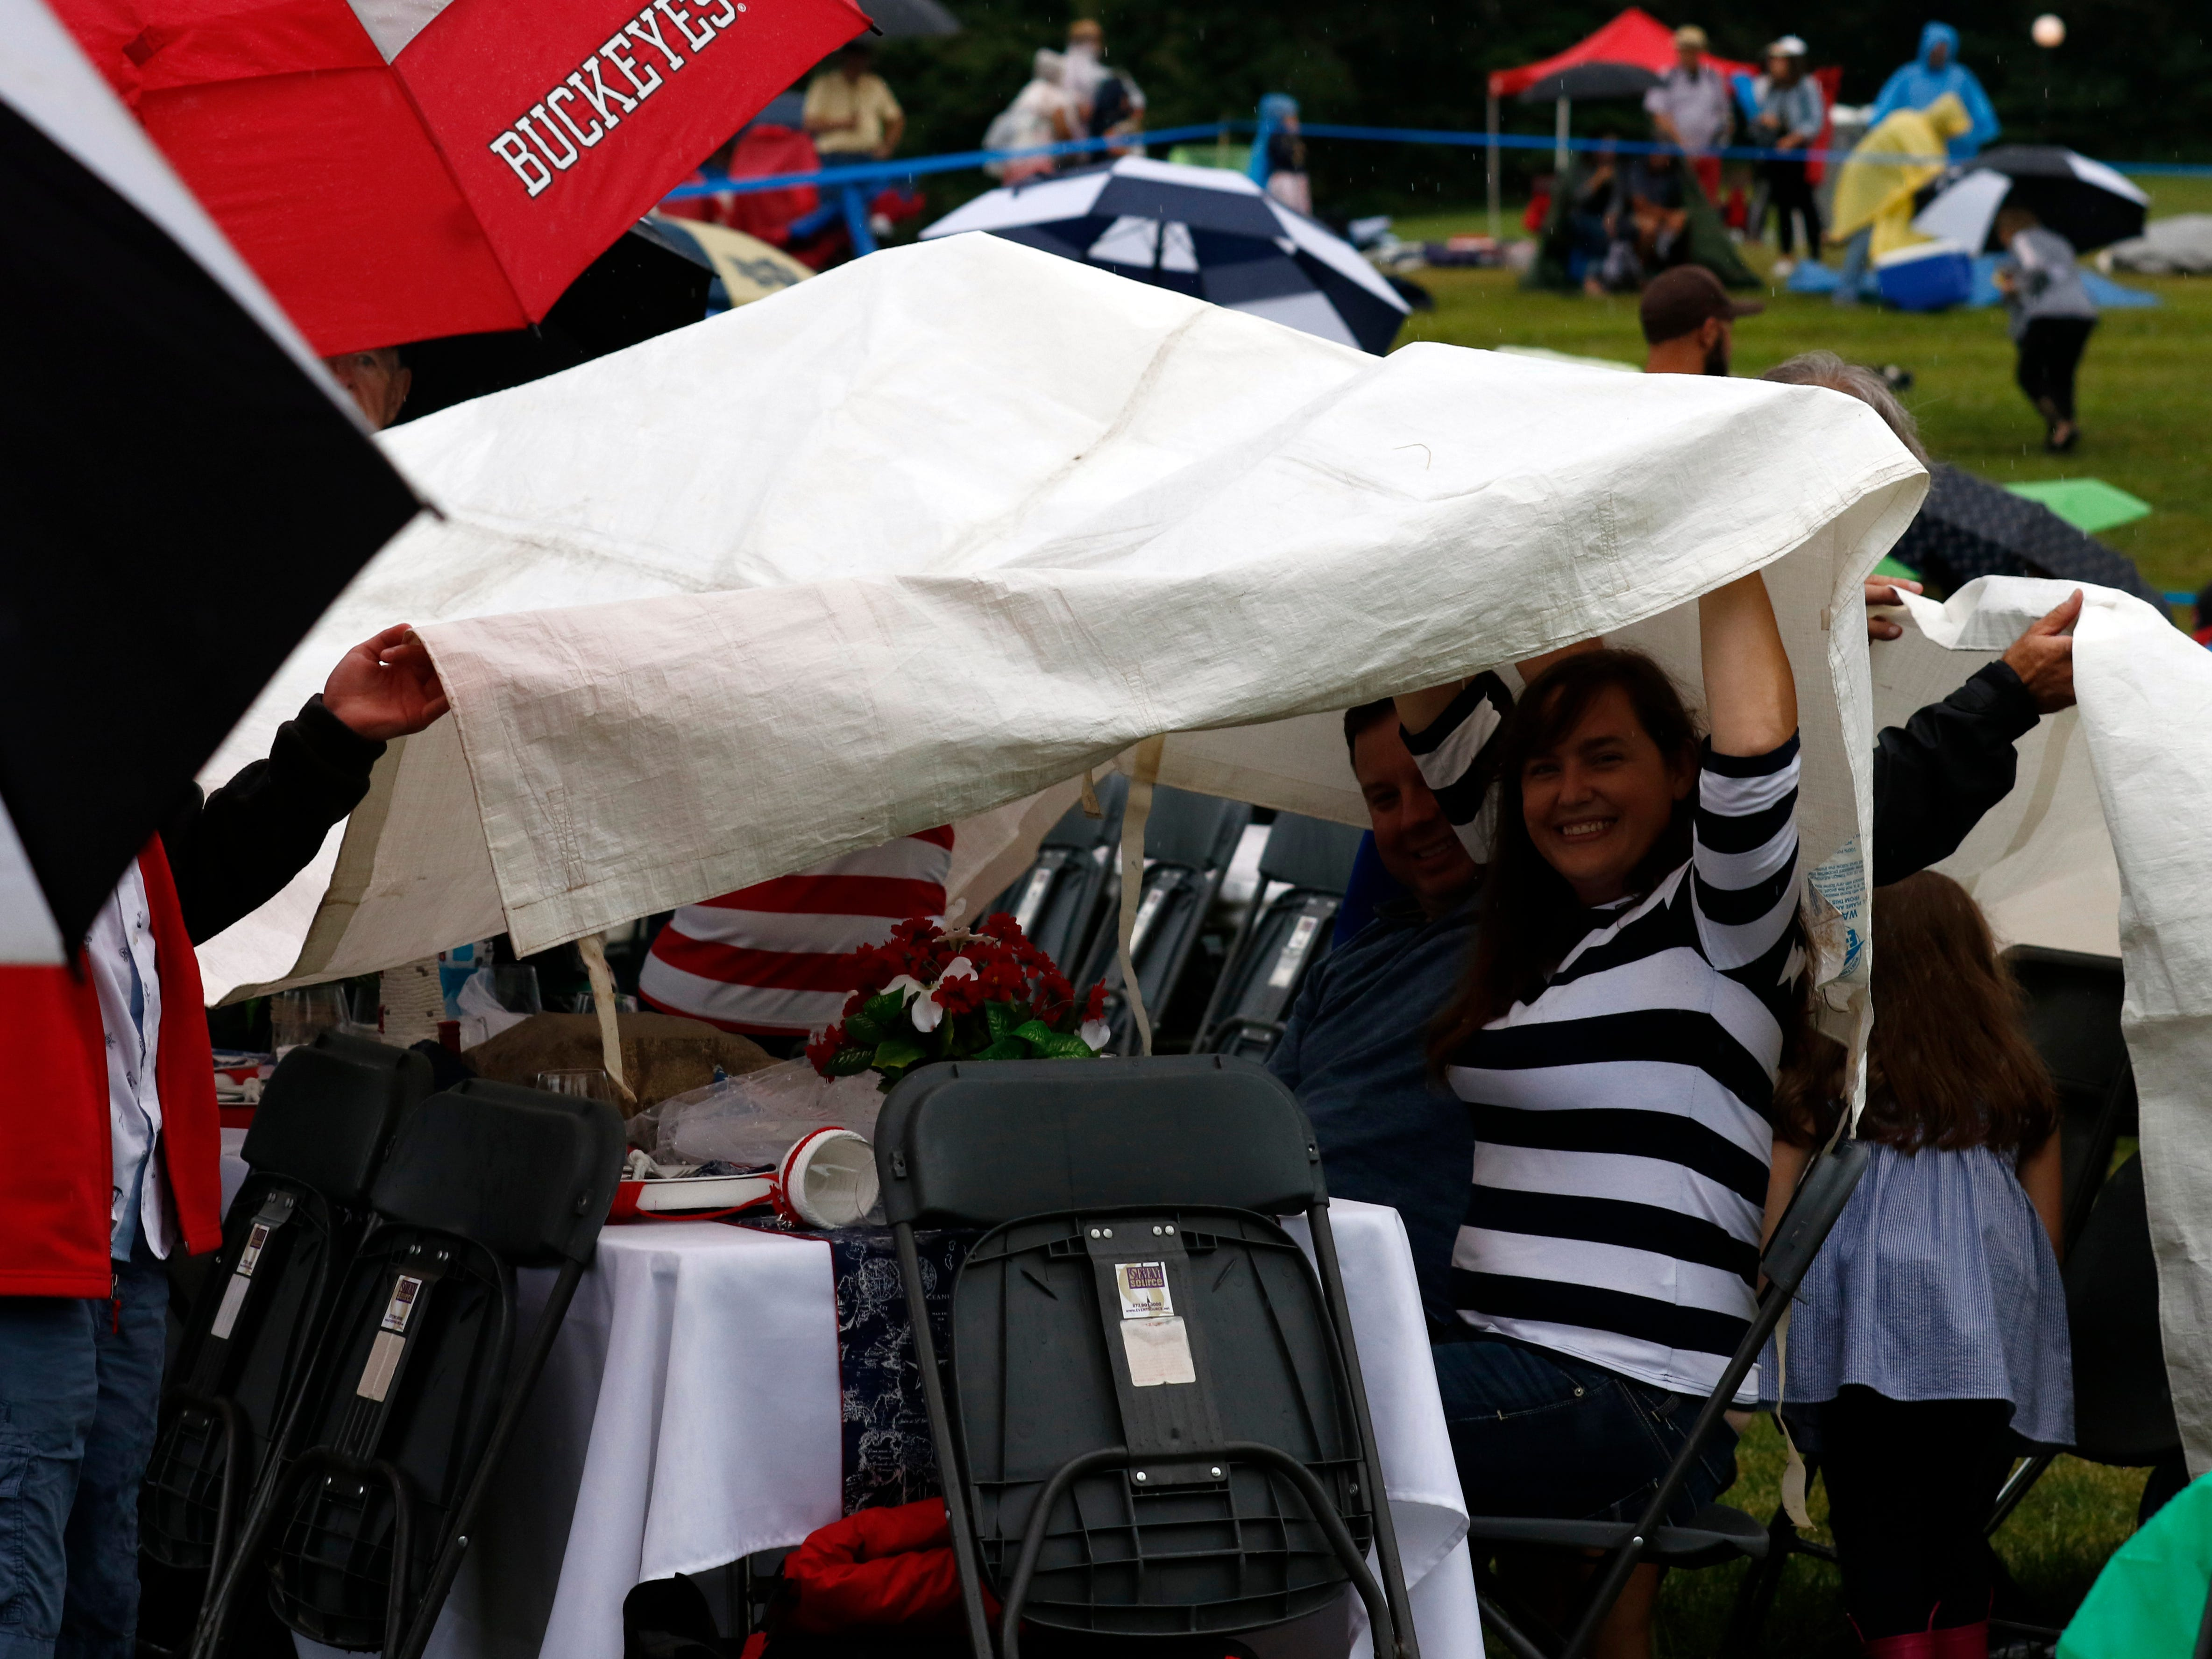 People waited under umbrellas for the beginning of the first headline concert of the 2018 Lancaster Festival. Lightning caused the concert venue to be evacuated about an hour before the concert was scheduled to start. Fairfield County Sheriff's Office Lt. Marc Churchill said hundreds of concert goers were cleared from the in less than 20 minutes. He said about half of the people sought shelter at Ohio University Lancaster, while the rest went to their cars.